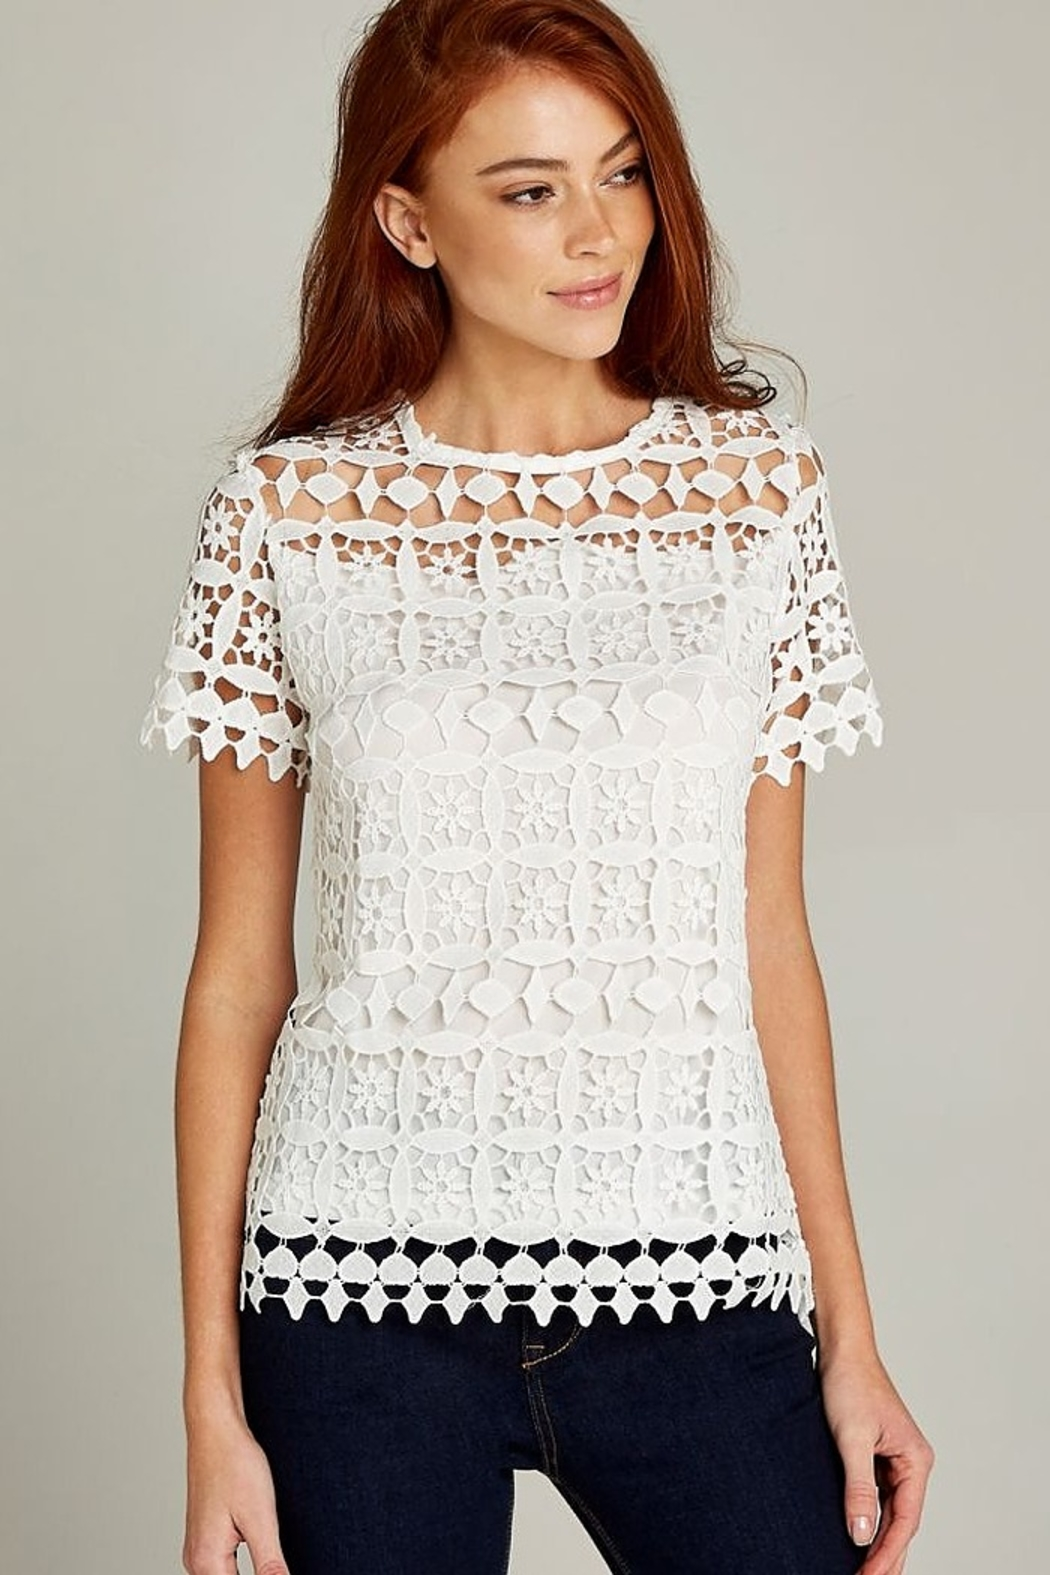 Apricot Cream Lace Short Sleeve Top - Main Image